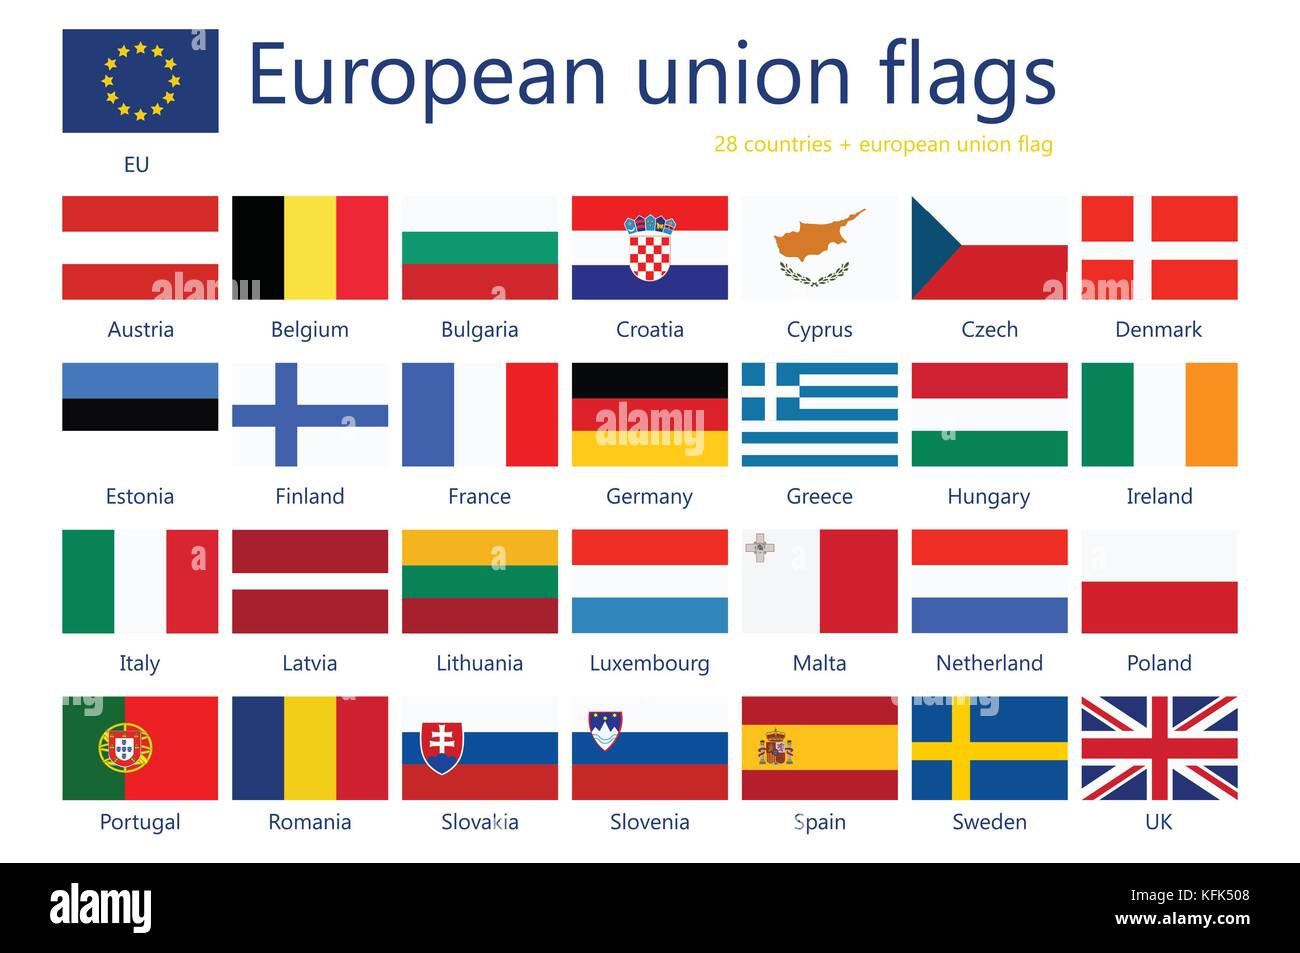 Vector illustration set of european union flags with names. 29 flags+ eu flag. Stock Vector